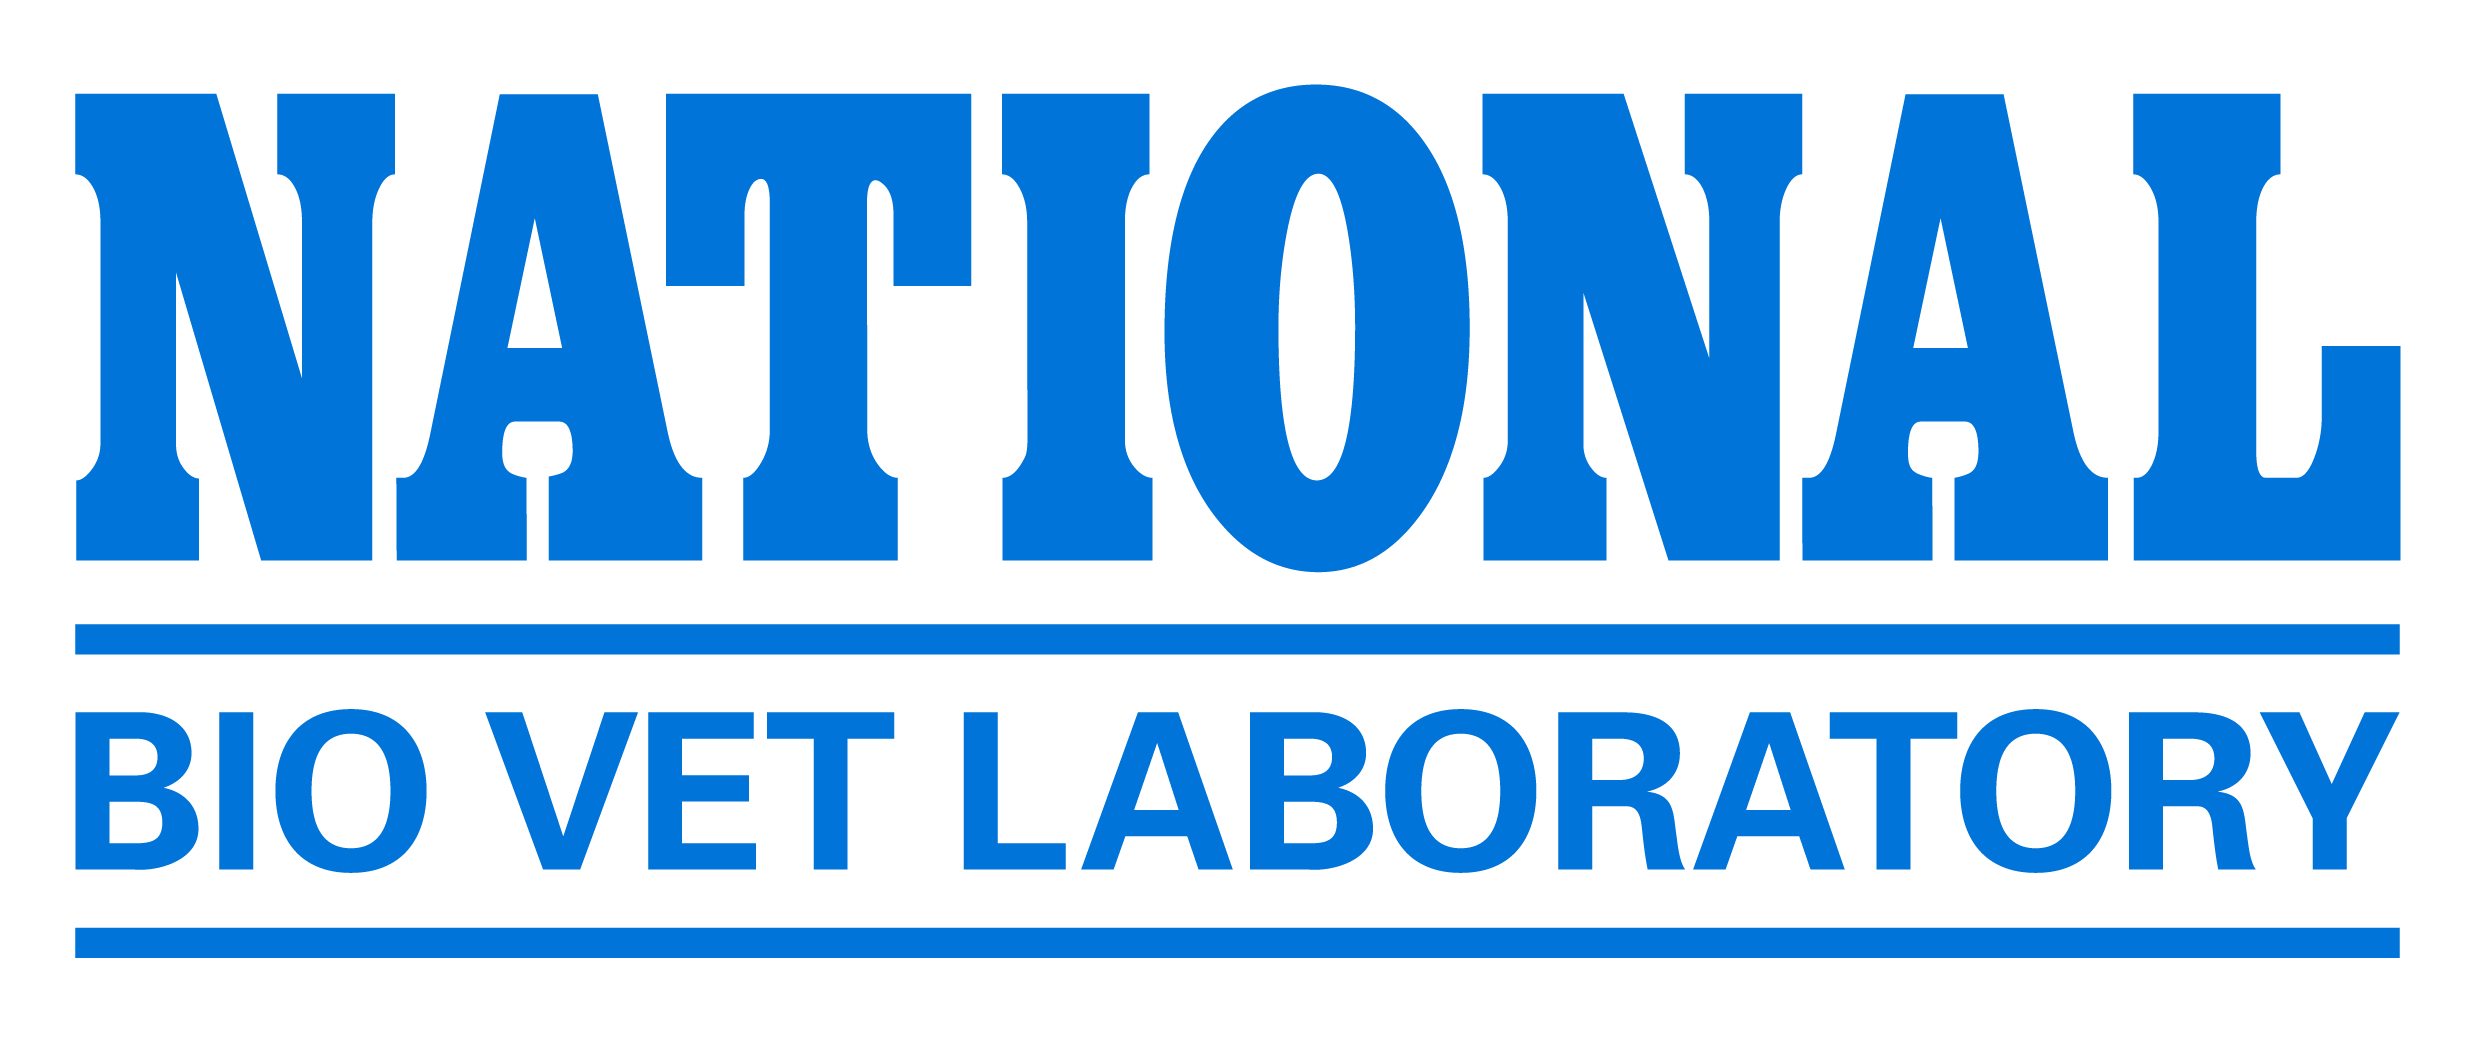 Announcing our partnership with National Bio Vet Laboratory